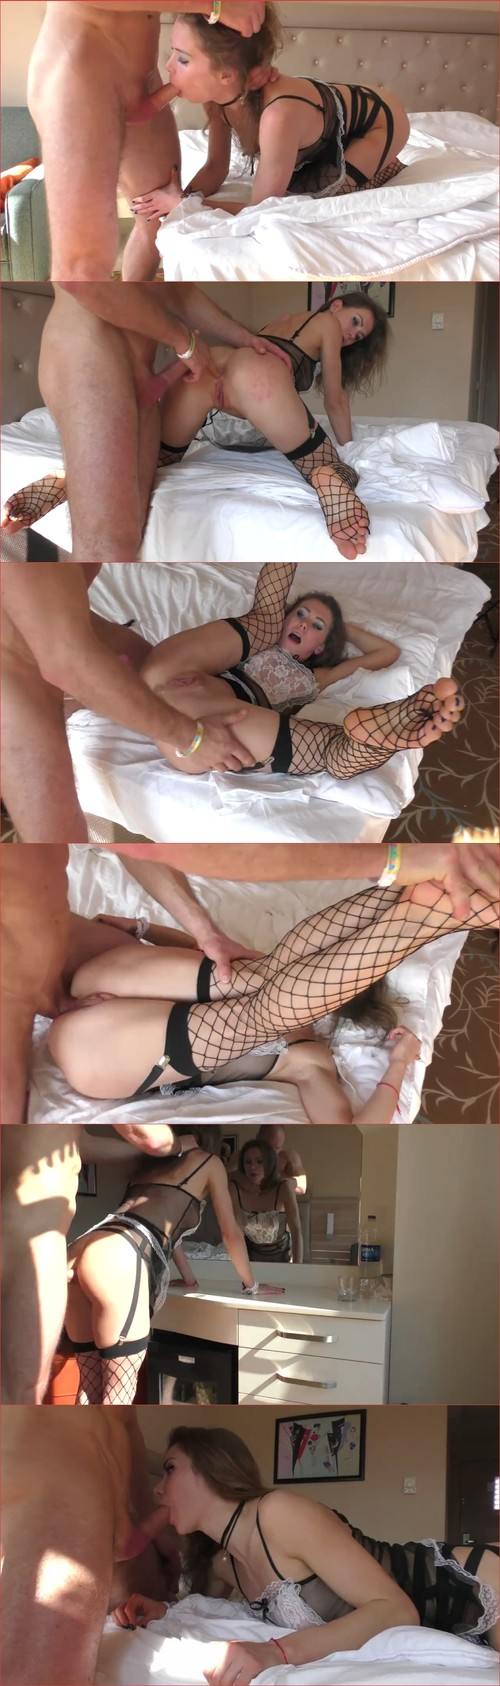 Mia Bandini - Hotel maid force Fucked cleaning windows with her tongue